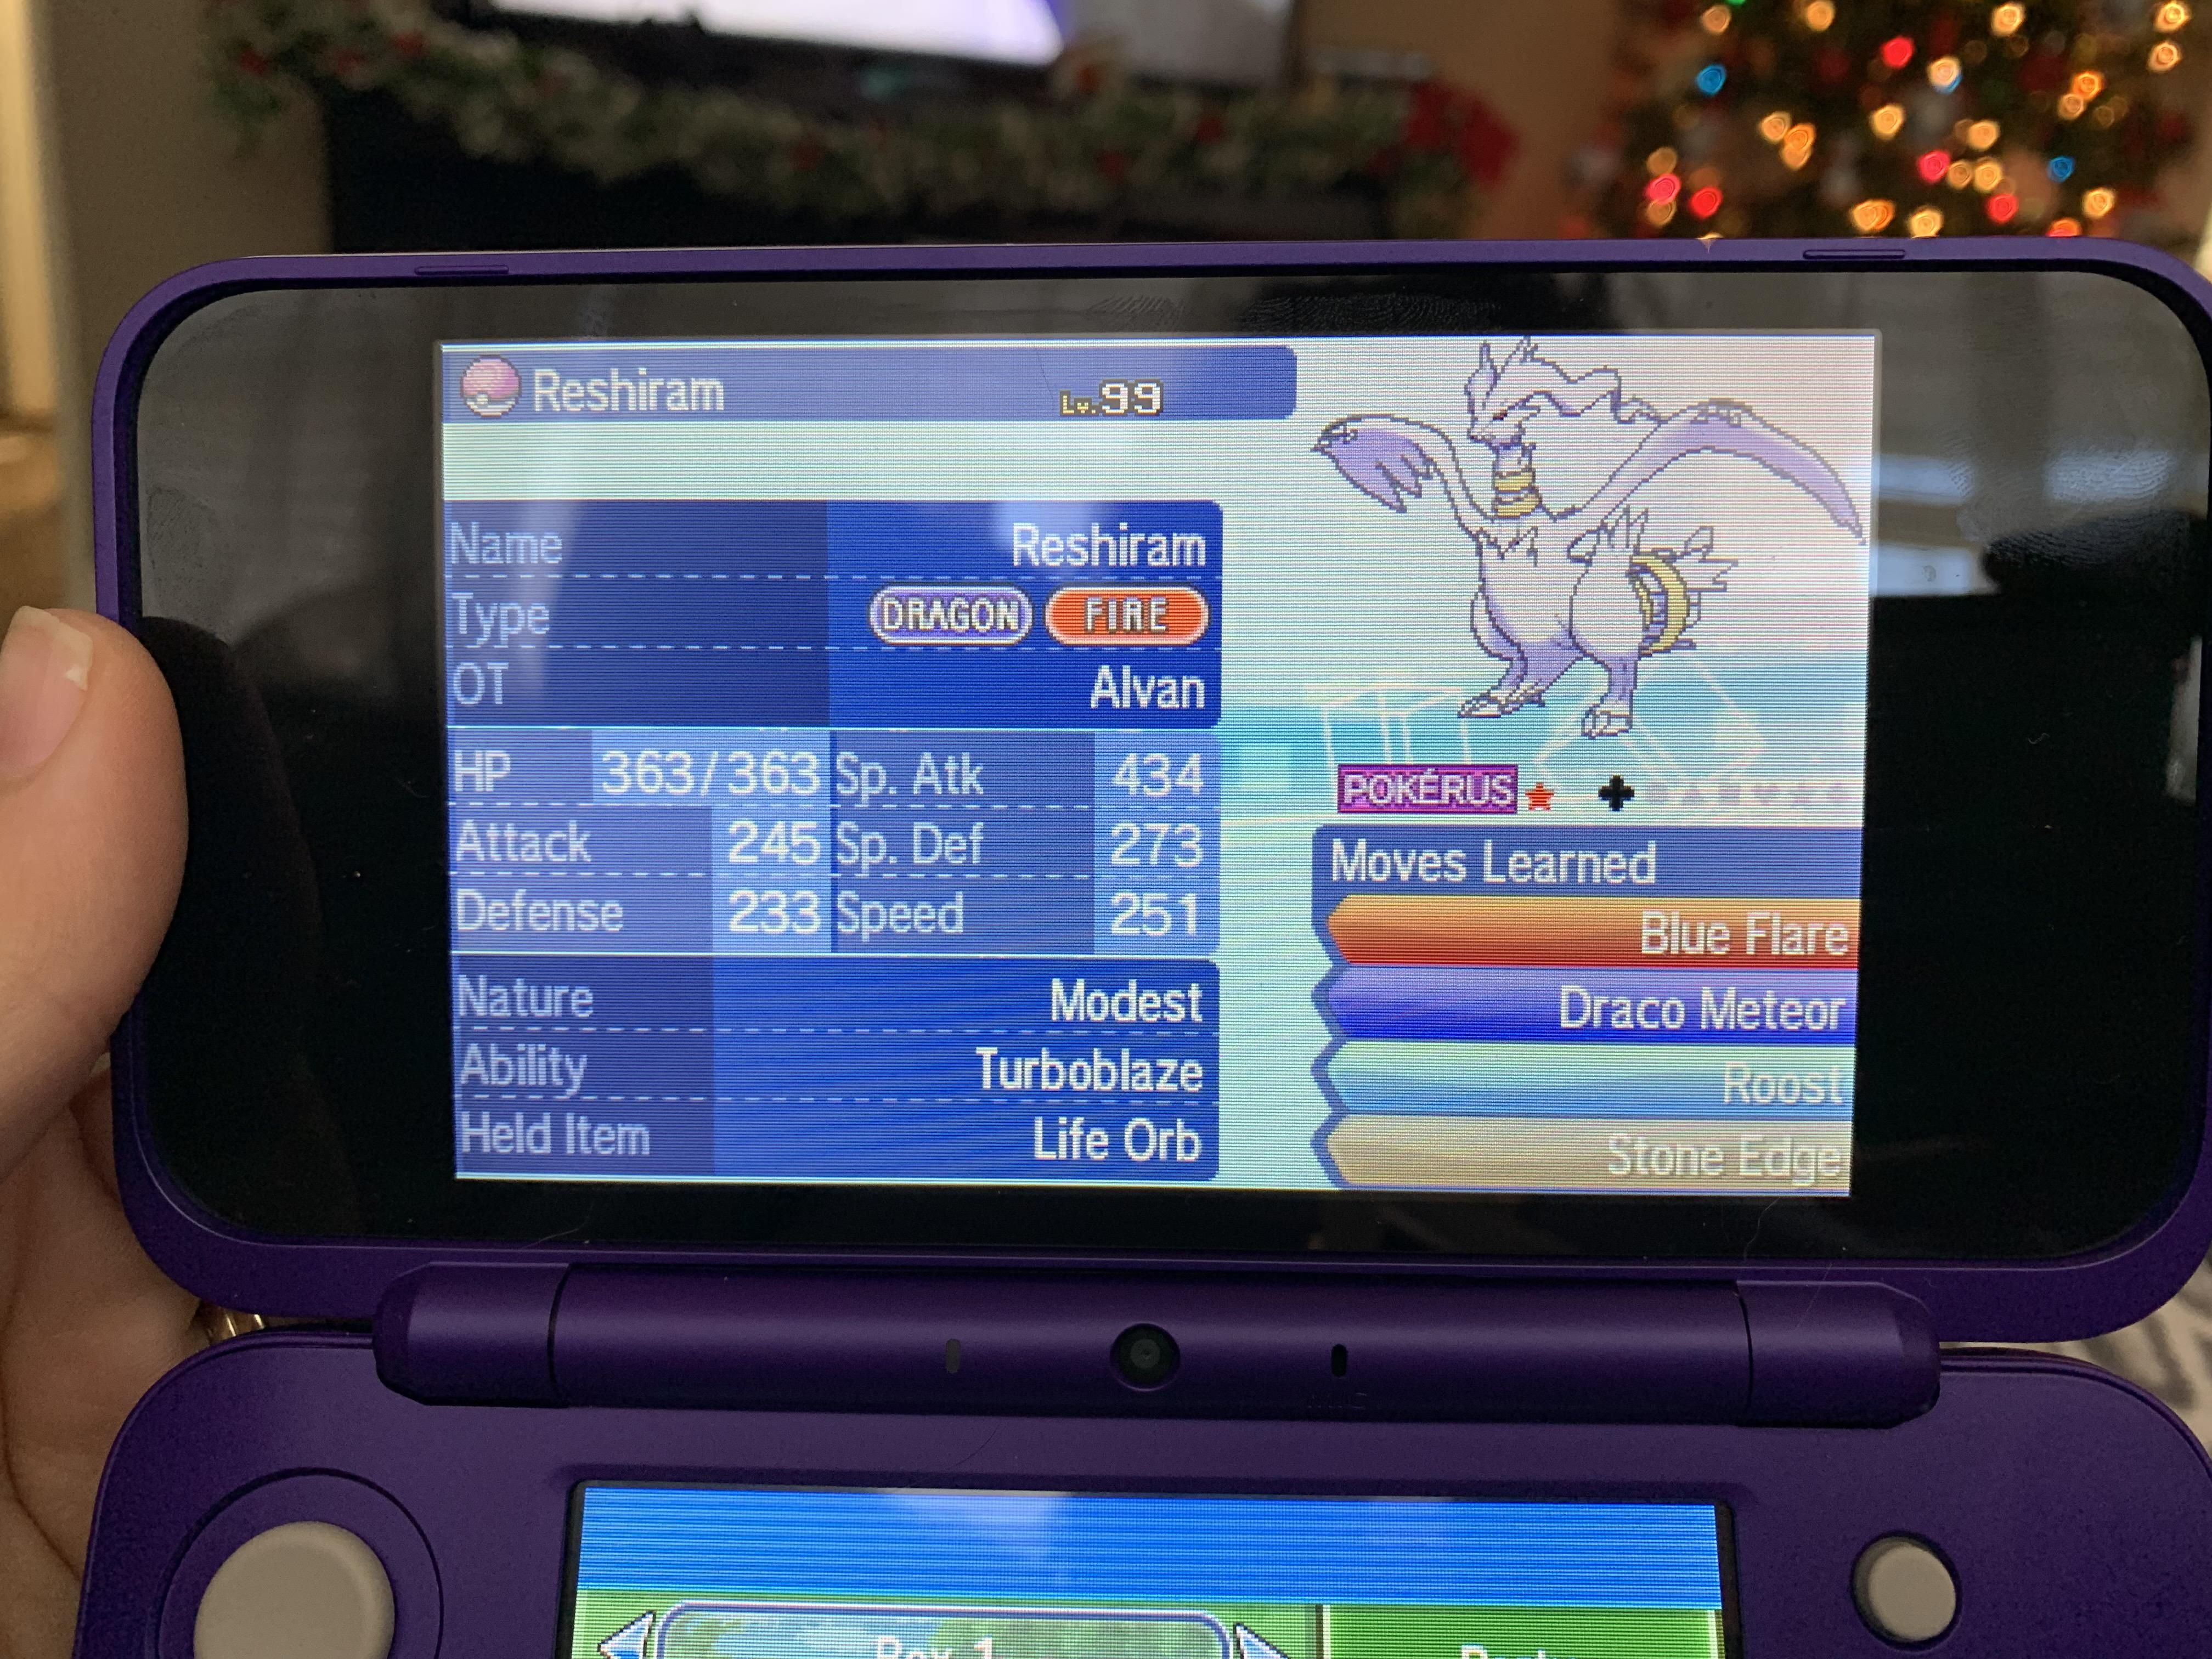 I got a shiny Reshiram infected with pokerus in wonder trade